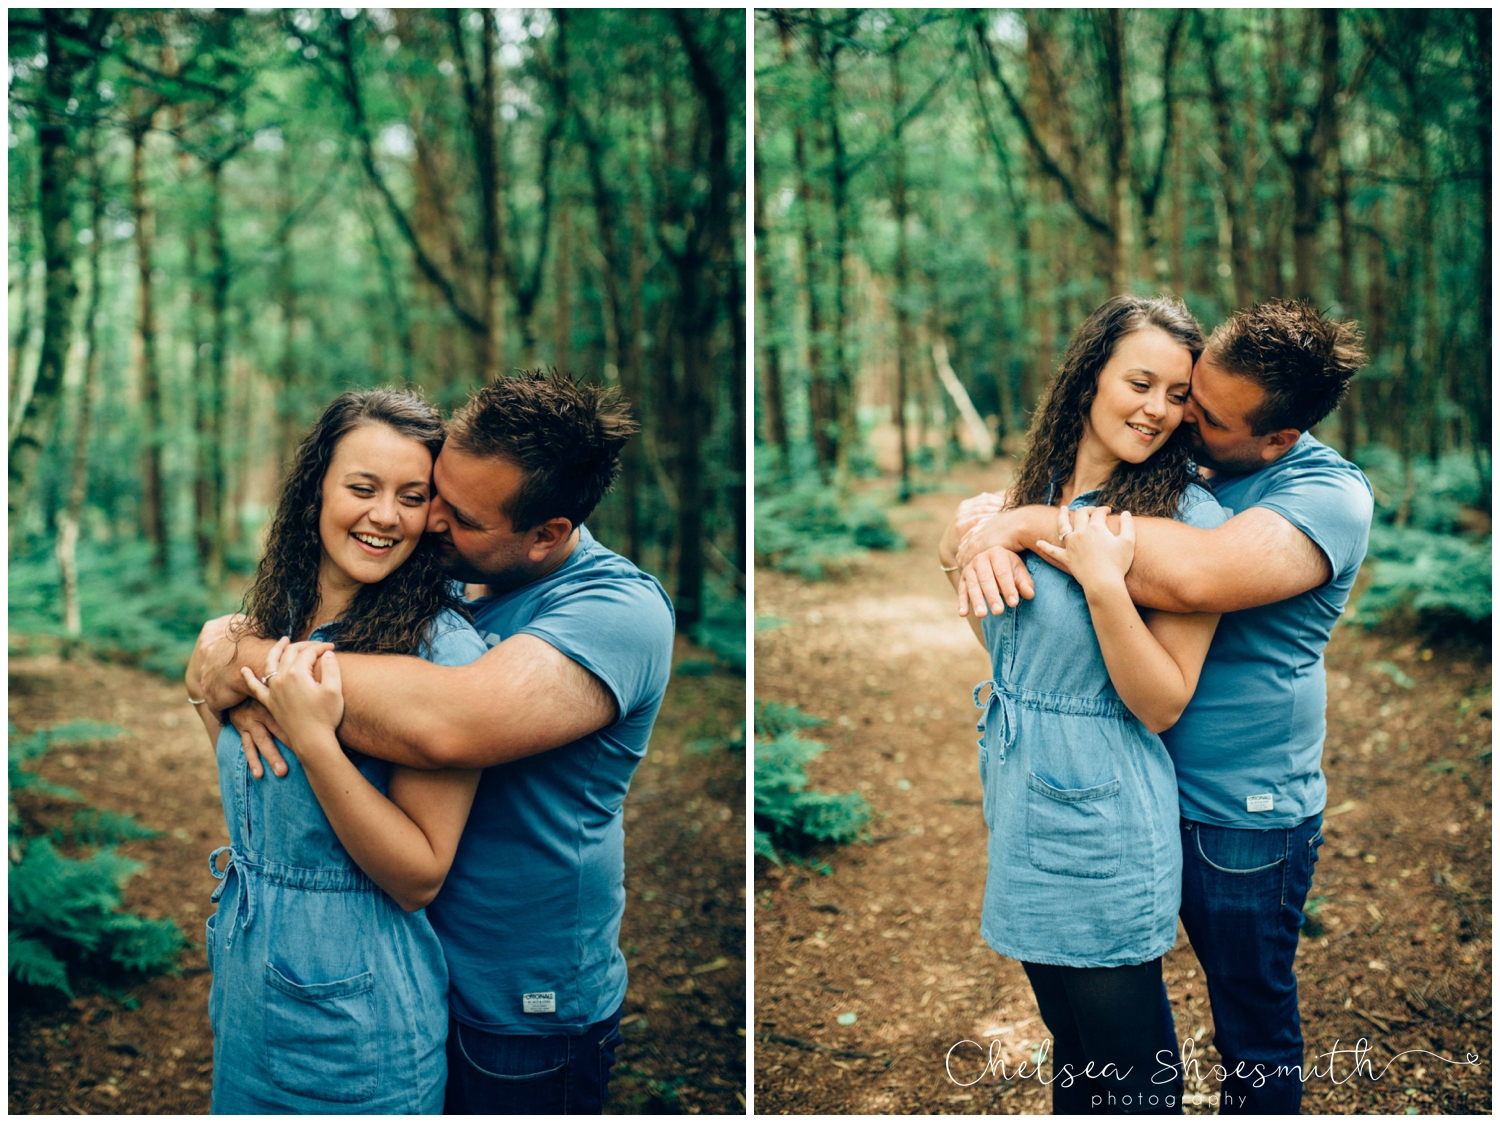 (52 of 75) Bethan & Peter Engagement Shoot Cheshire, Delamere Forest Chelsea Shoesmith Photography